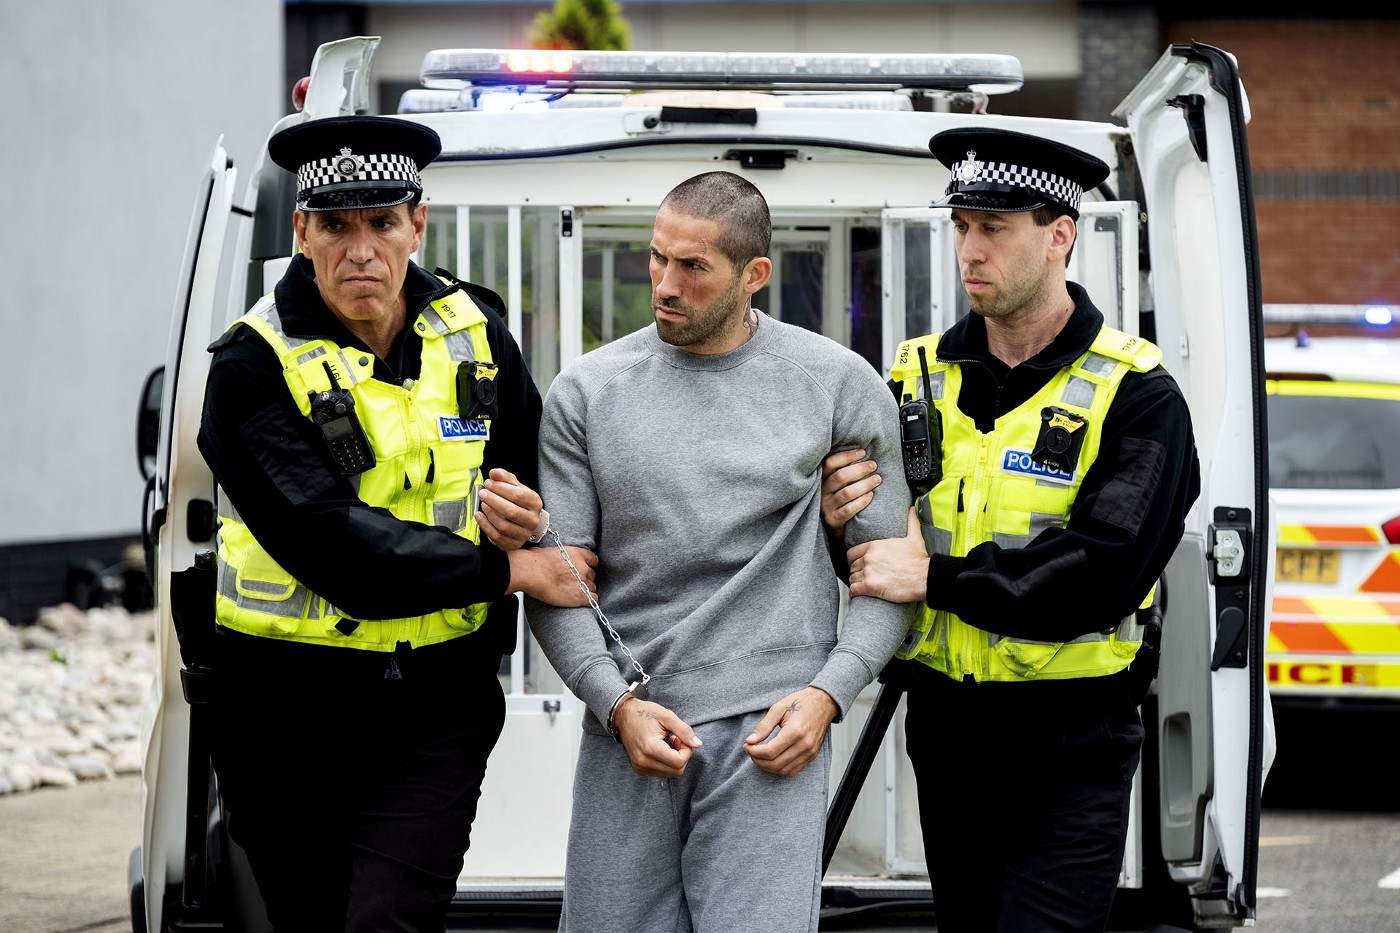 Production still from Avengement (2019) with Scott Adkins (as Cain Burgess) in the middle of two police officers, being escorted by them.